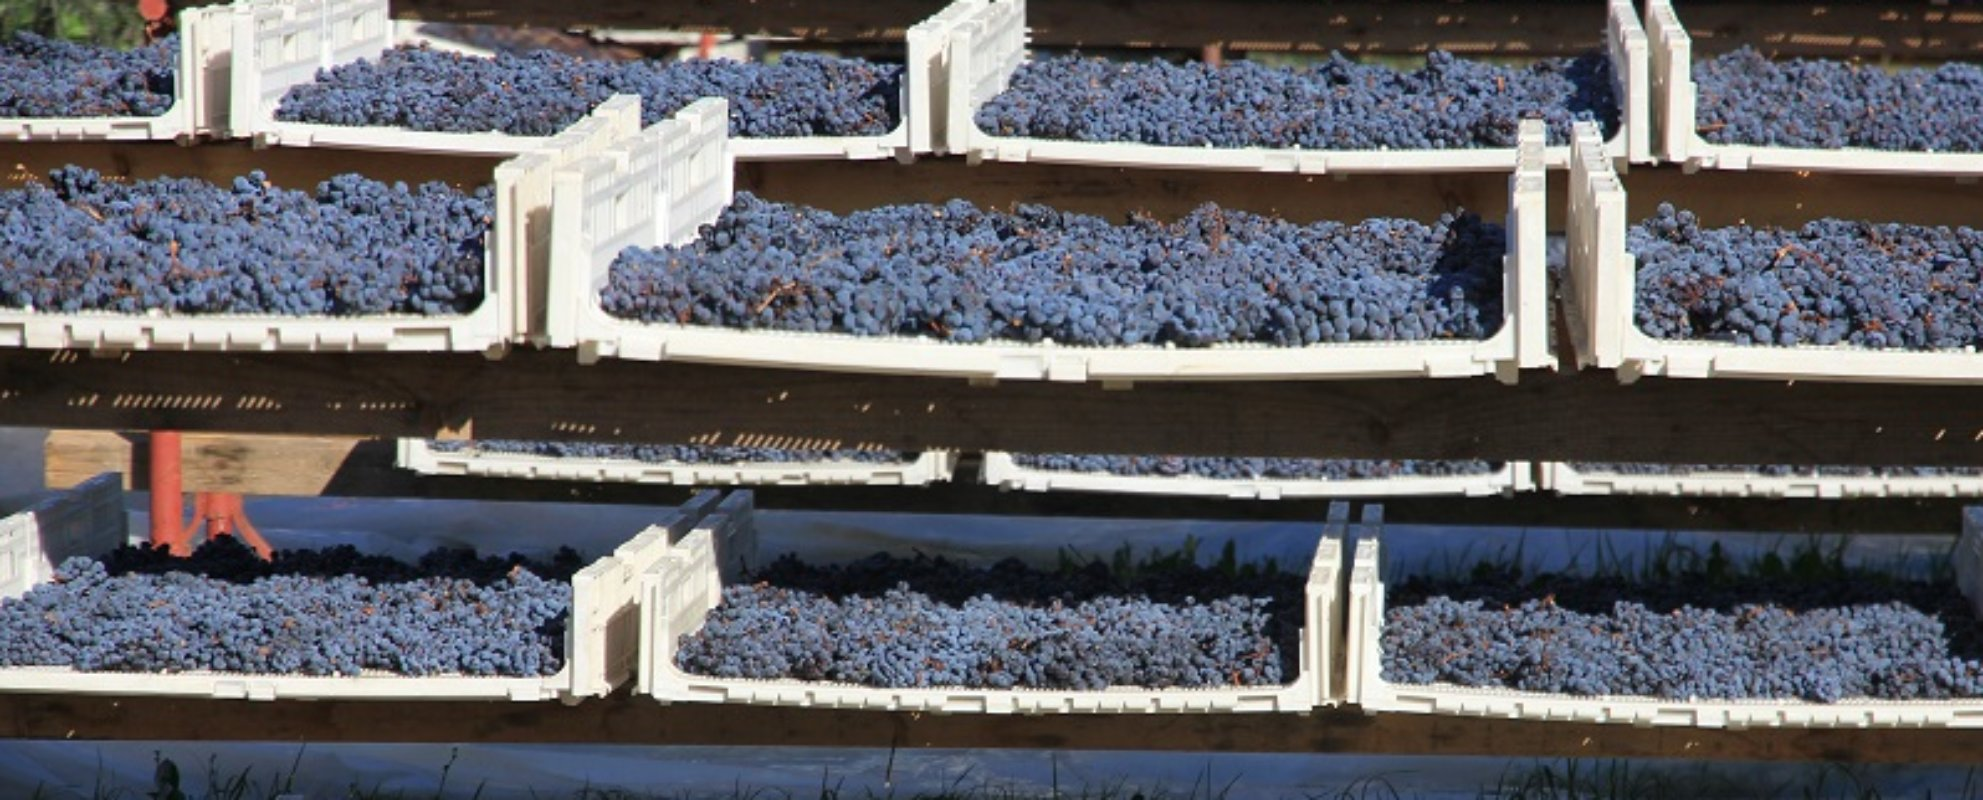 Aleatico grapes